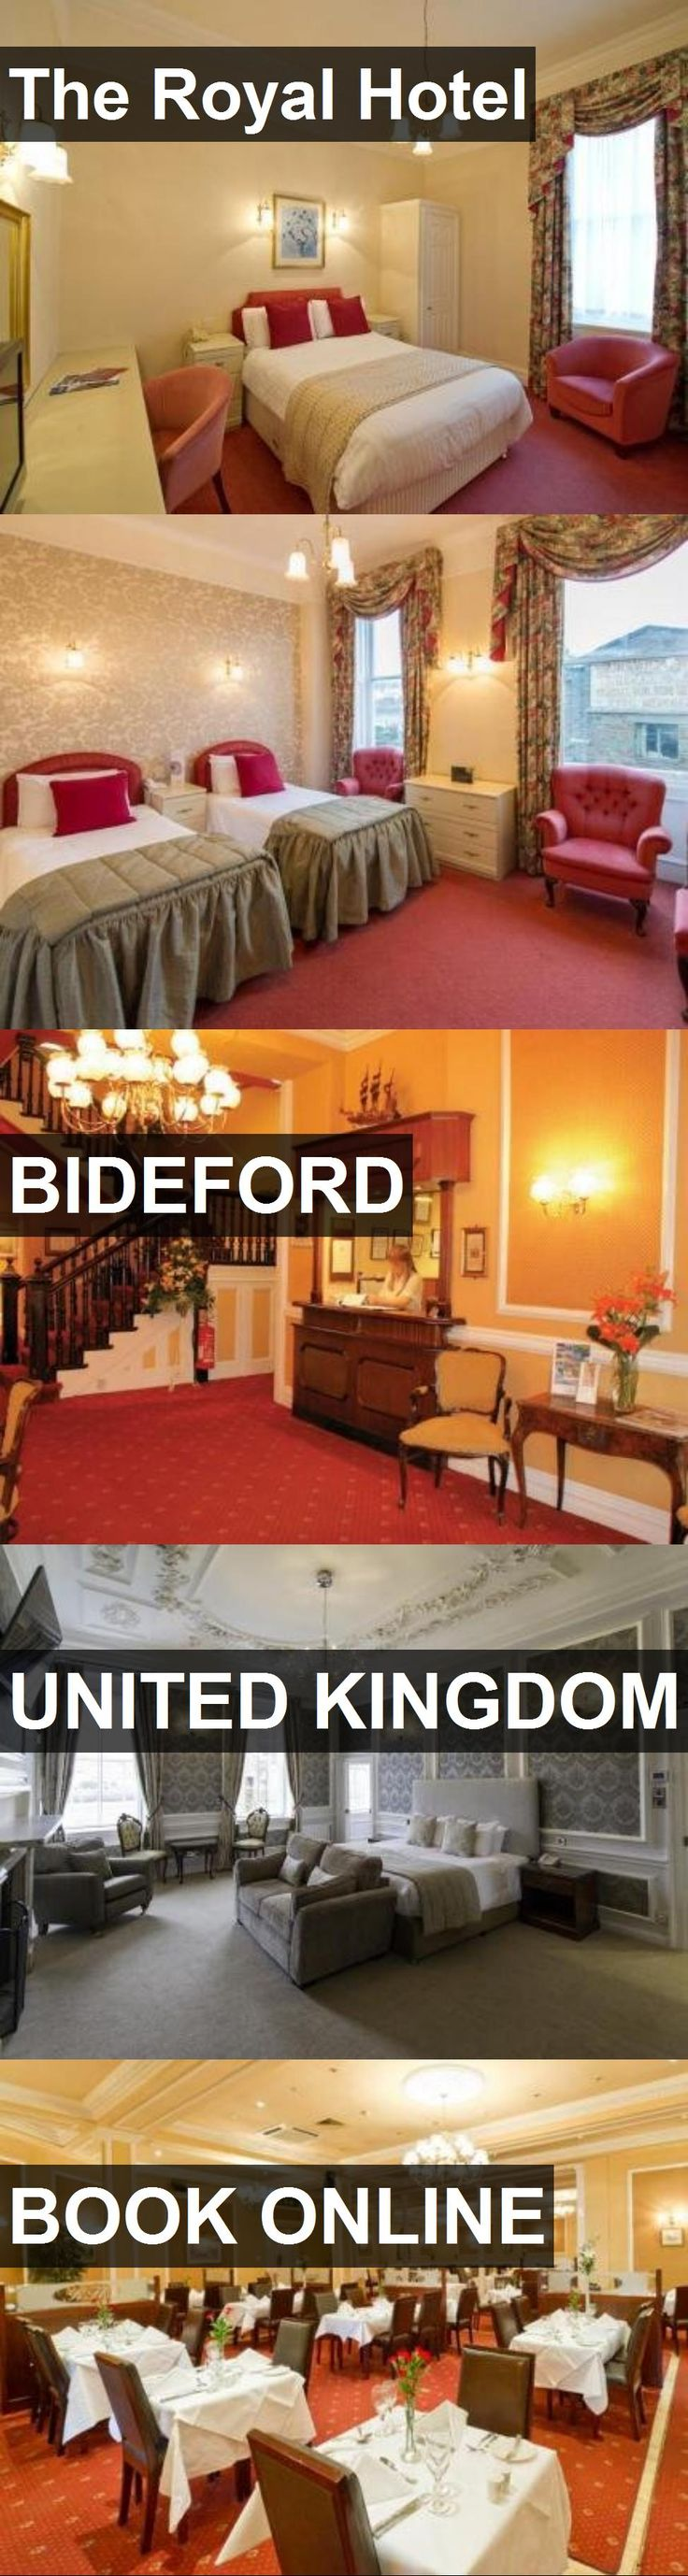 Hotel The Royal Hotel in Bideford, United Kingdom. For more information, photos, reviews and best prices please follow the link. #UnitedKingdom #Bideford #TheRoyalHotel #hotel #travel #vacation